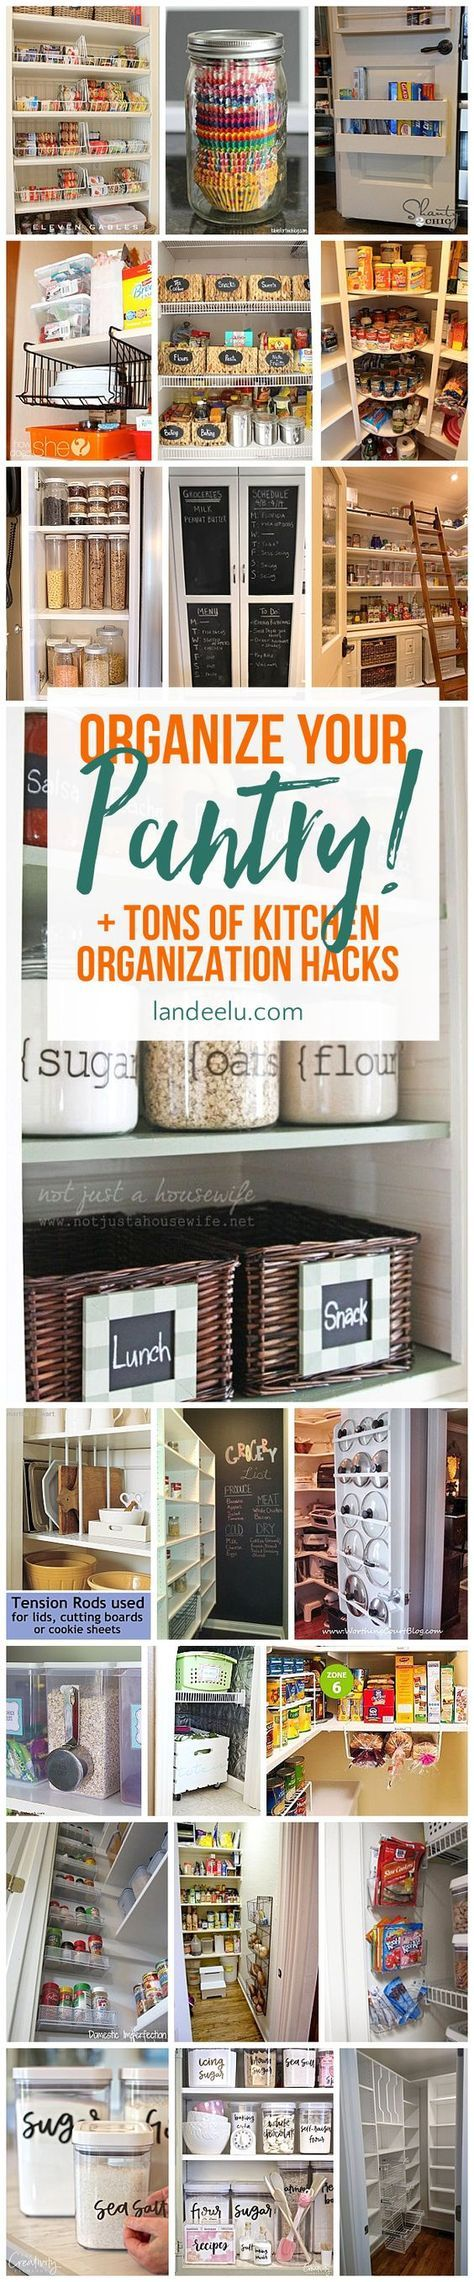 Love these ideas for kitchen organization... that pot lids one is genius!